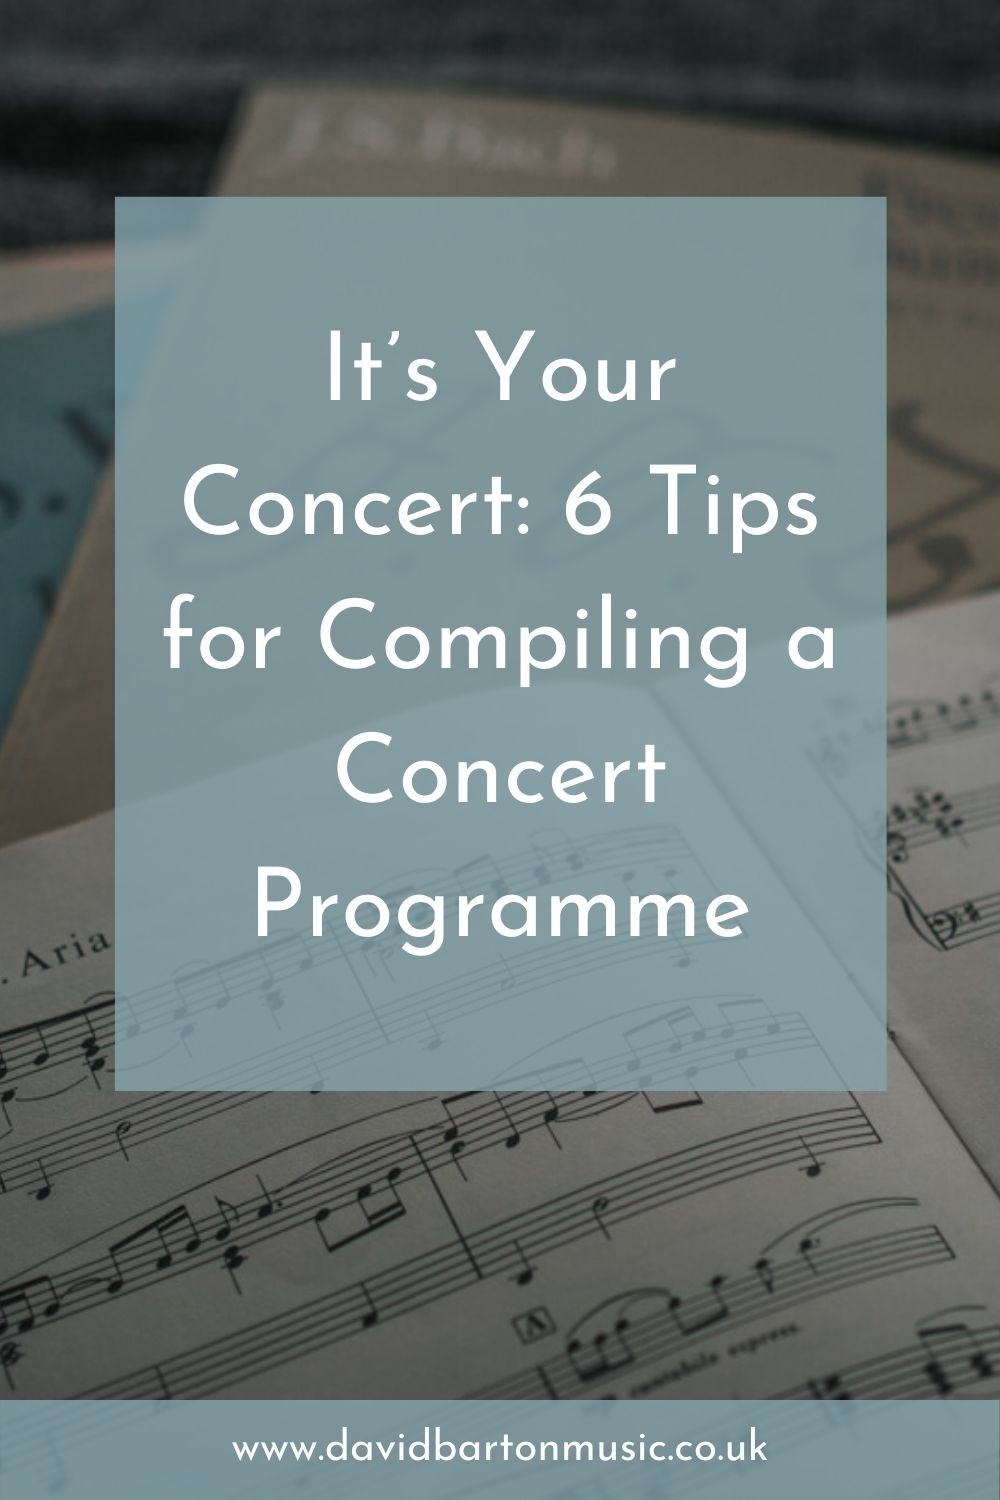 It's Your Concert: 6 Tips for Compiling a Concert Programme - Pinterest graphic